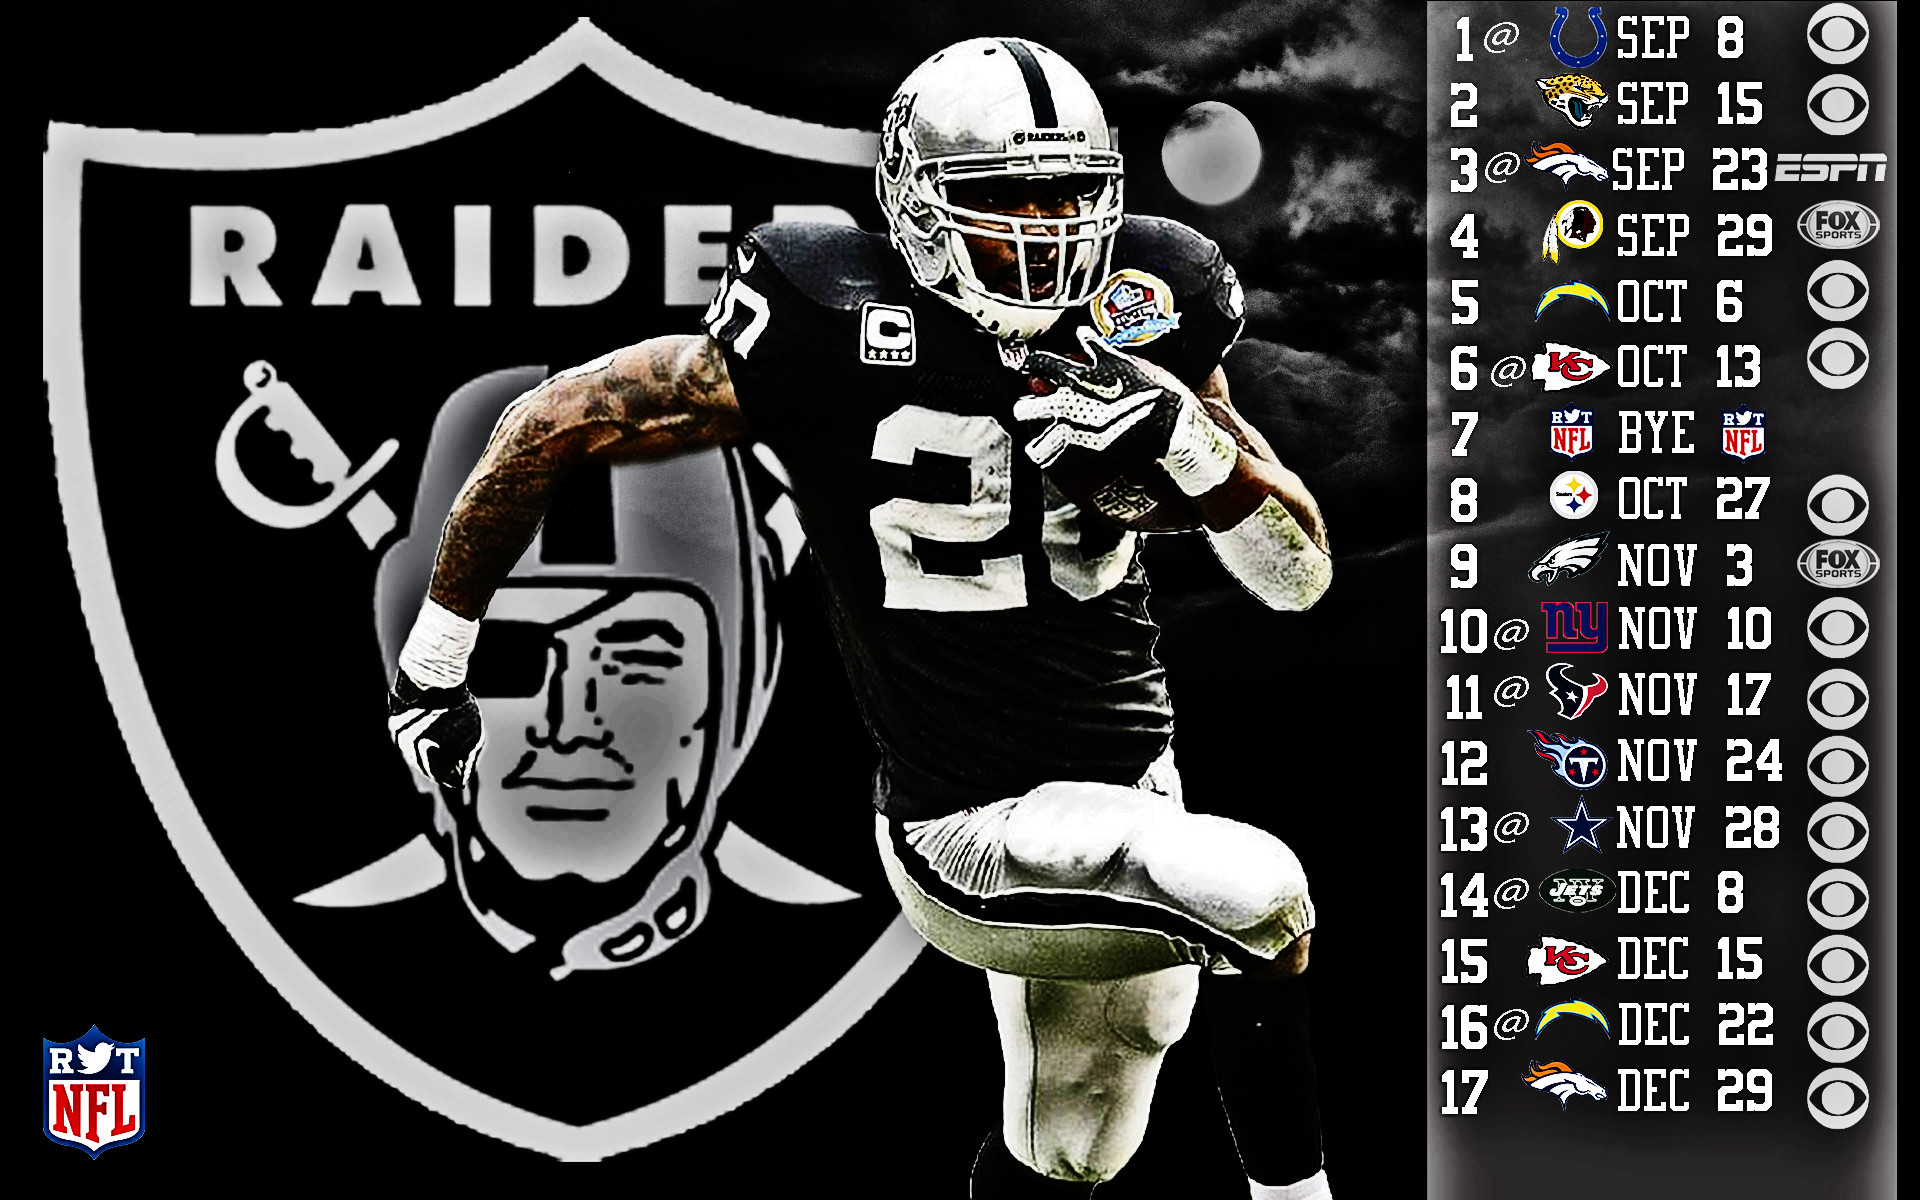 1920x1200 Oakland Raiders Backgrounds Creative Oakland Raiders Wallpapers